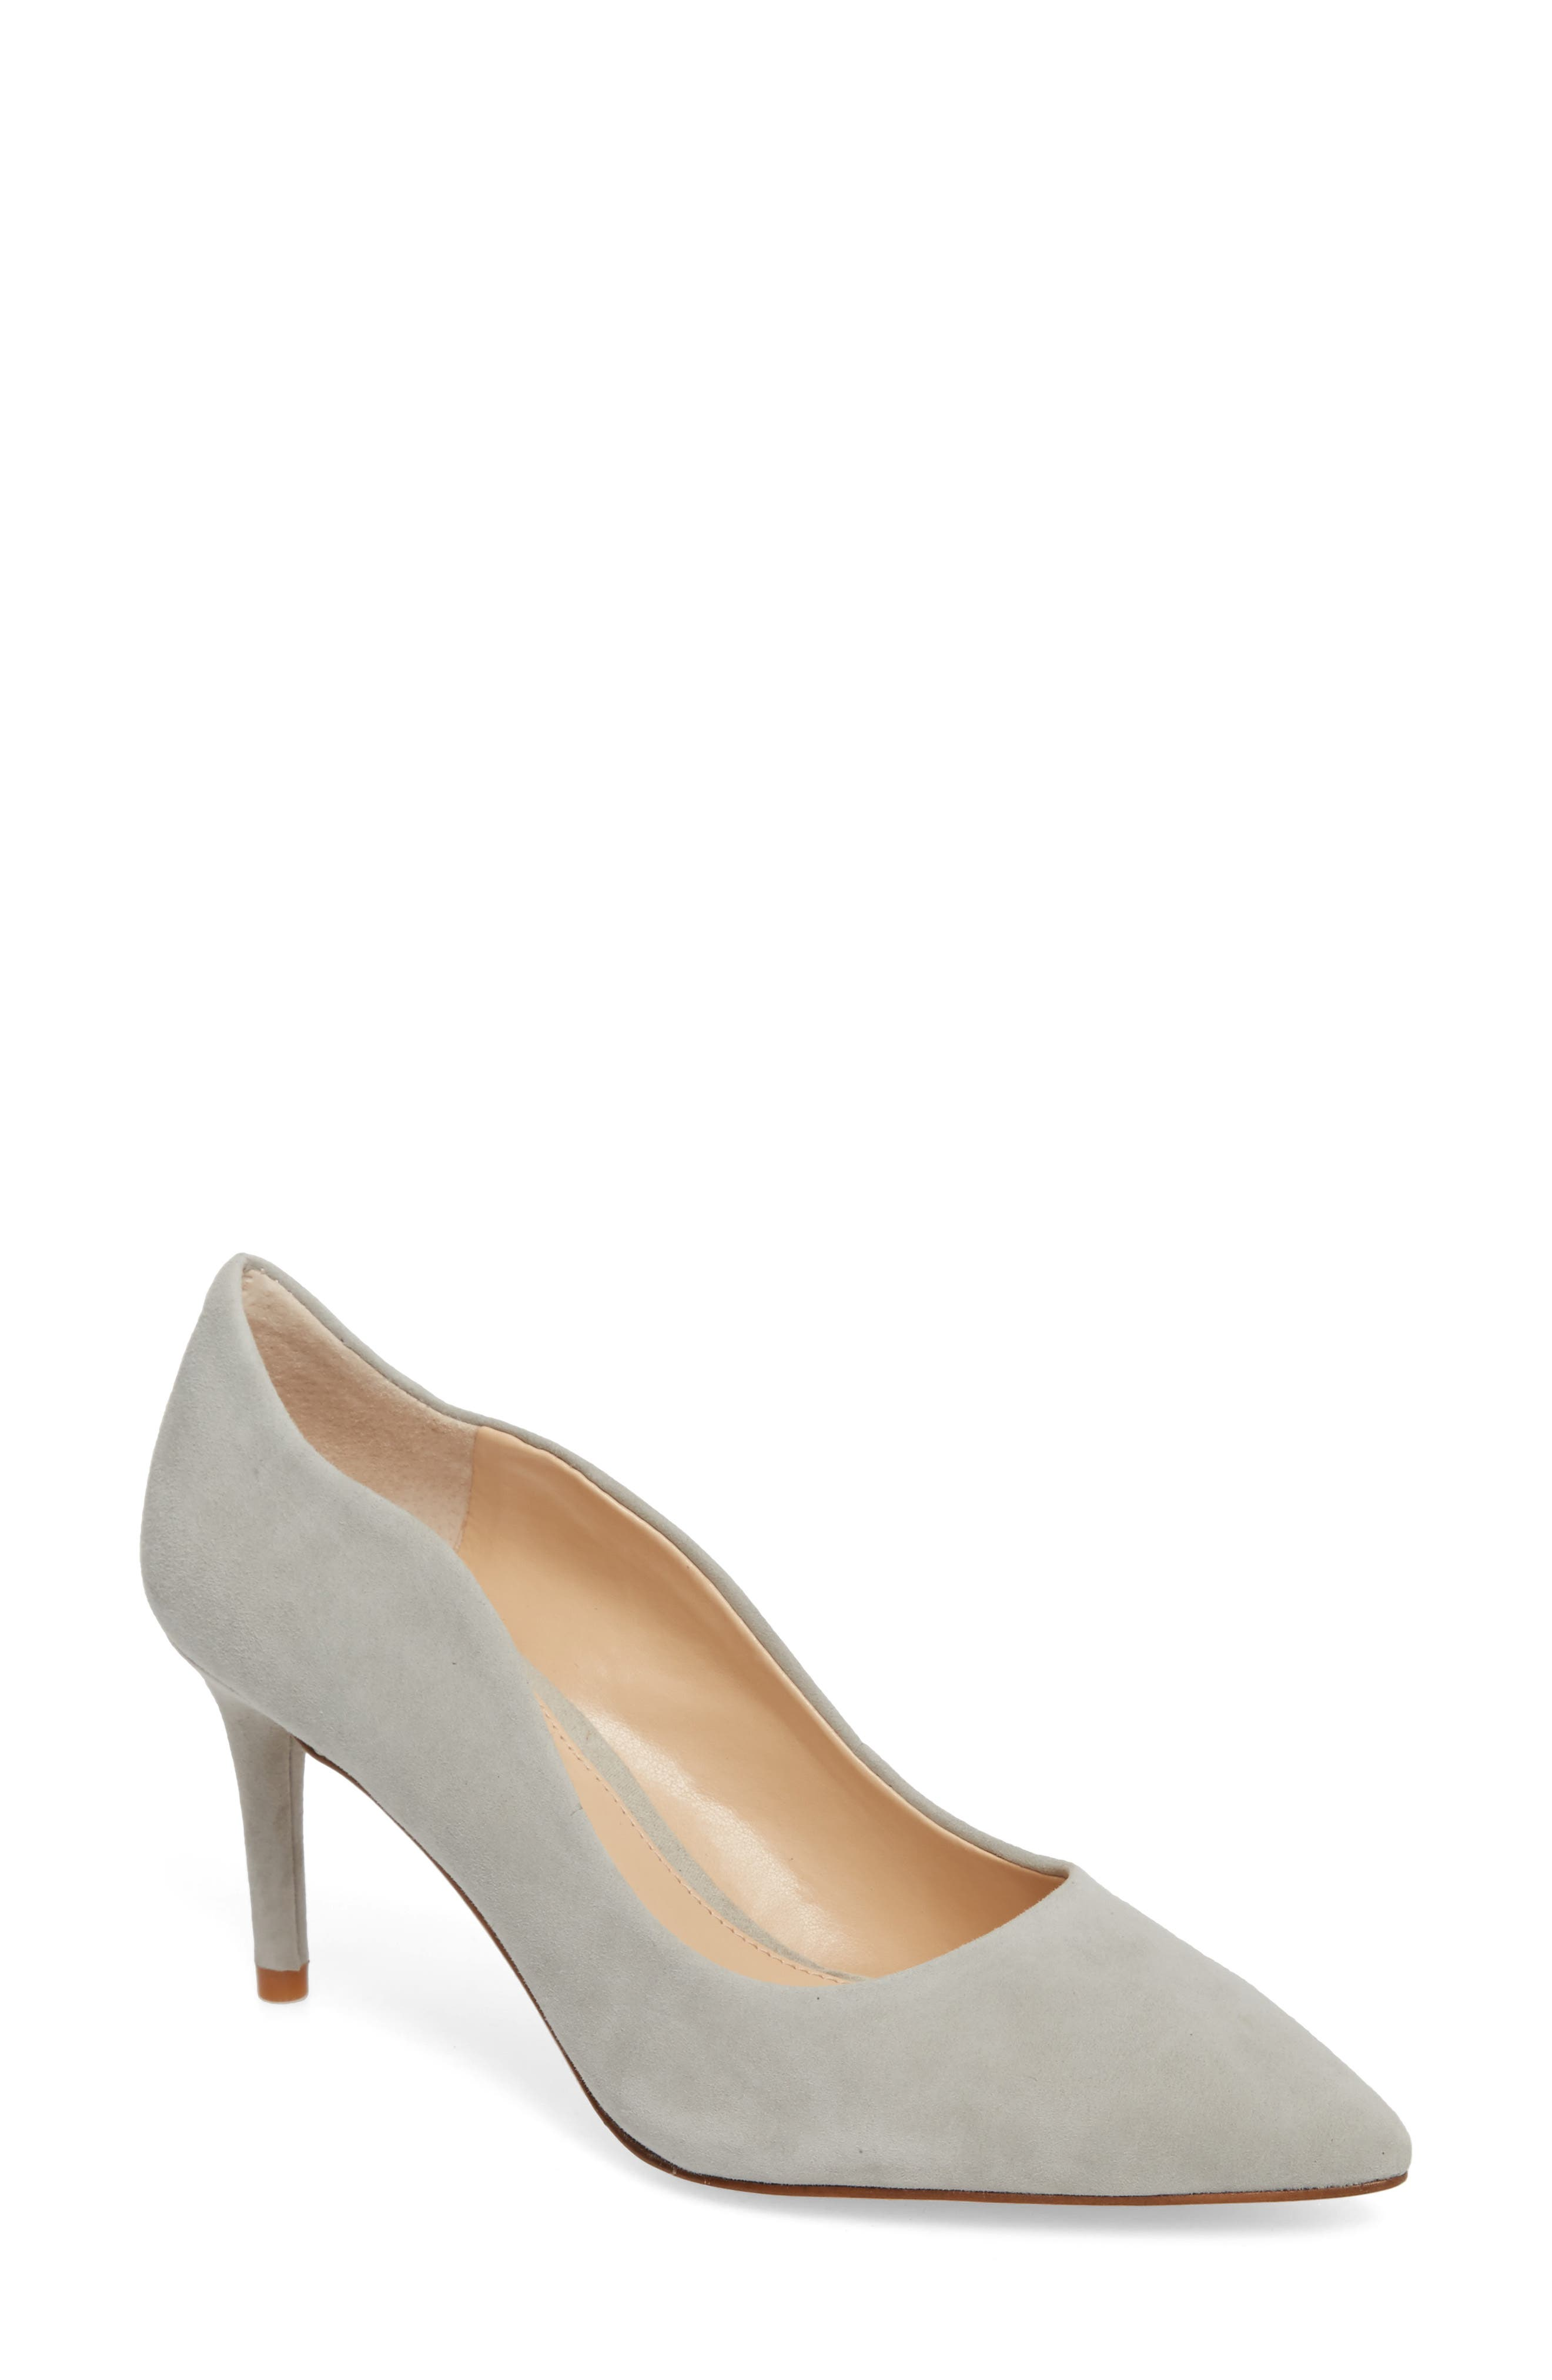 Main Image - Vince Camuto Jaynita Pointy Toe Pump (Women)